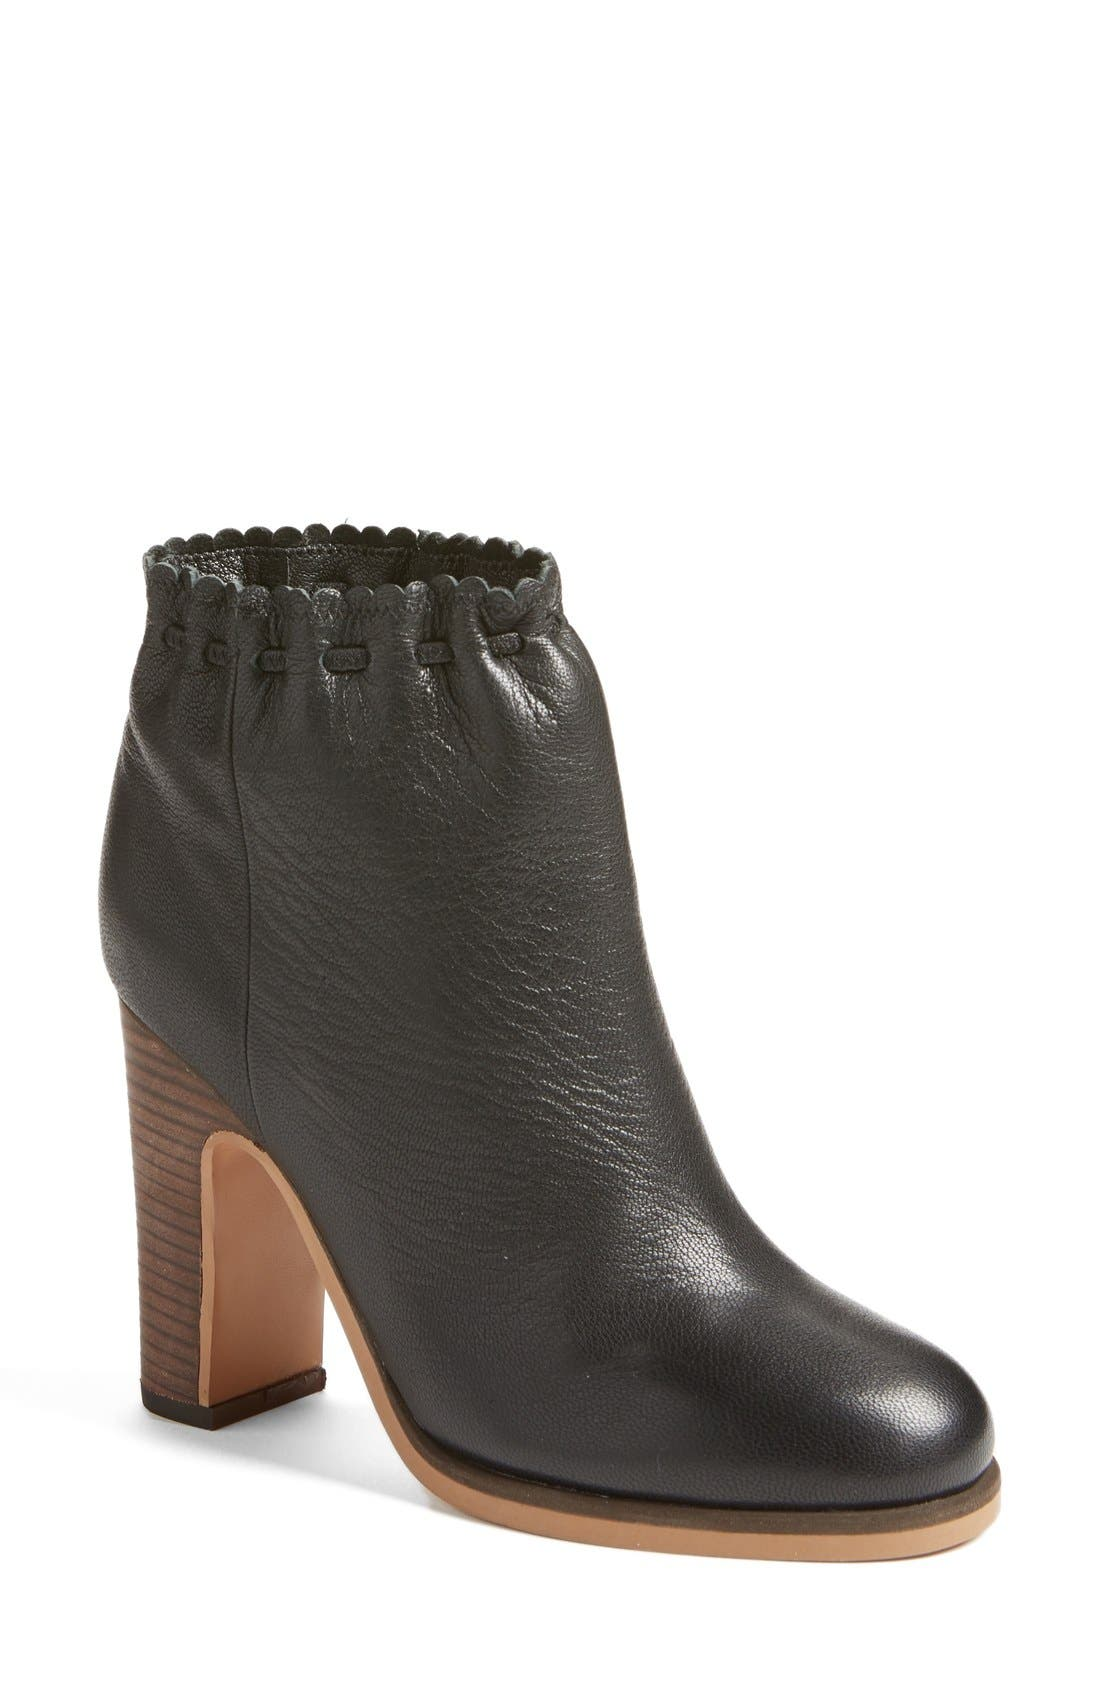 'Jane' Scalloped Bootie,                             Main thumbnail 1, color,